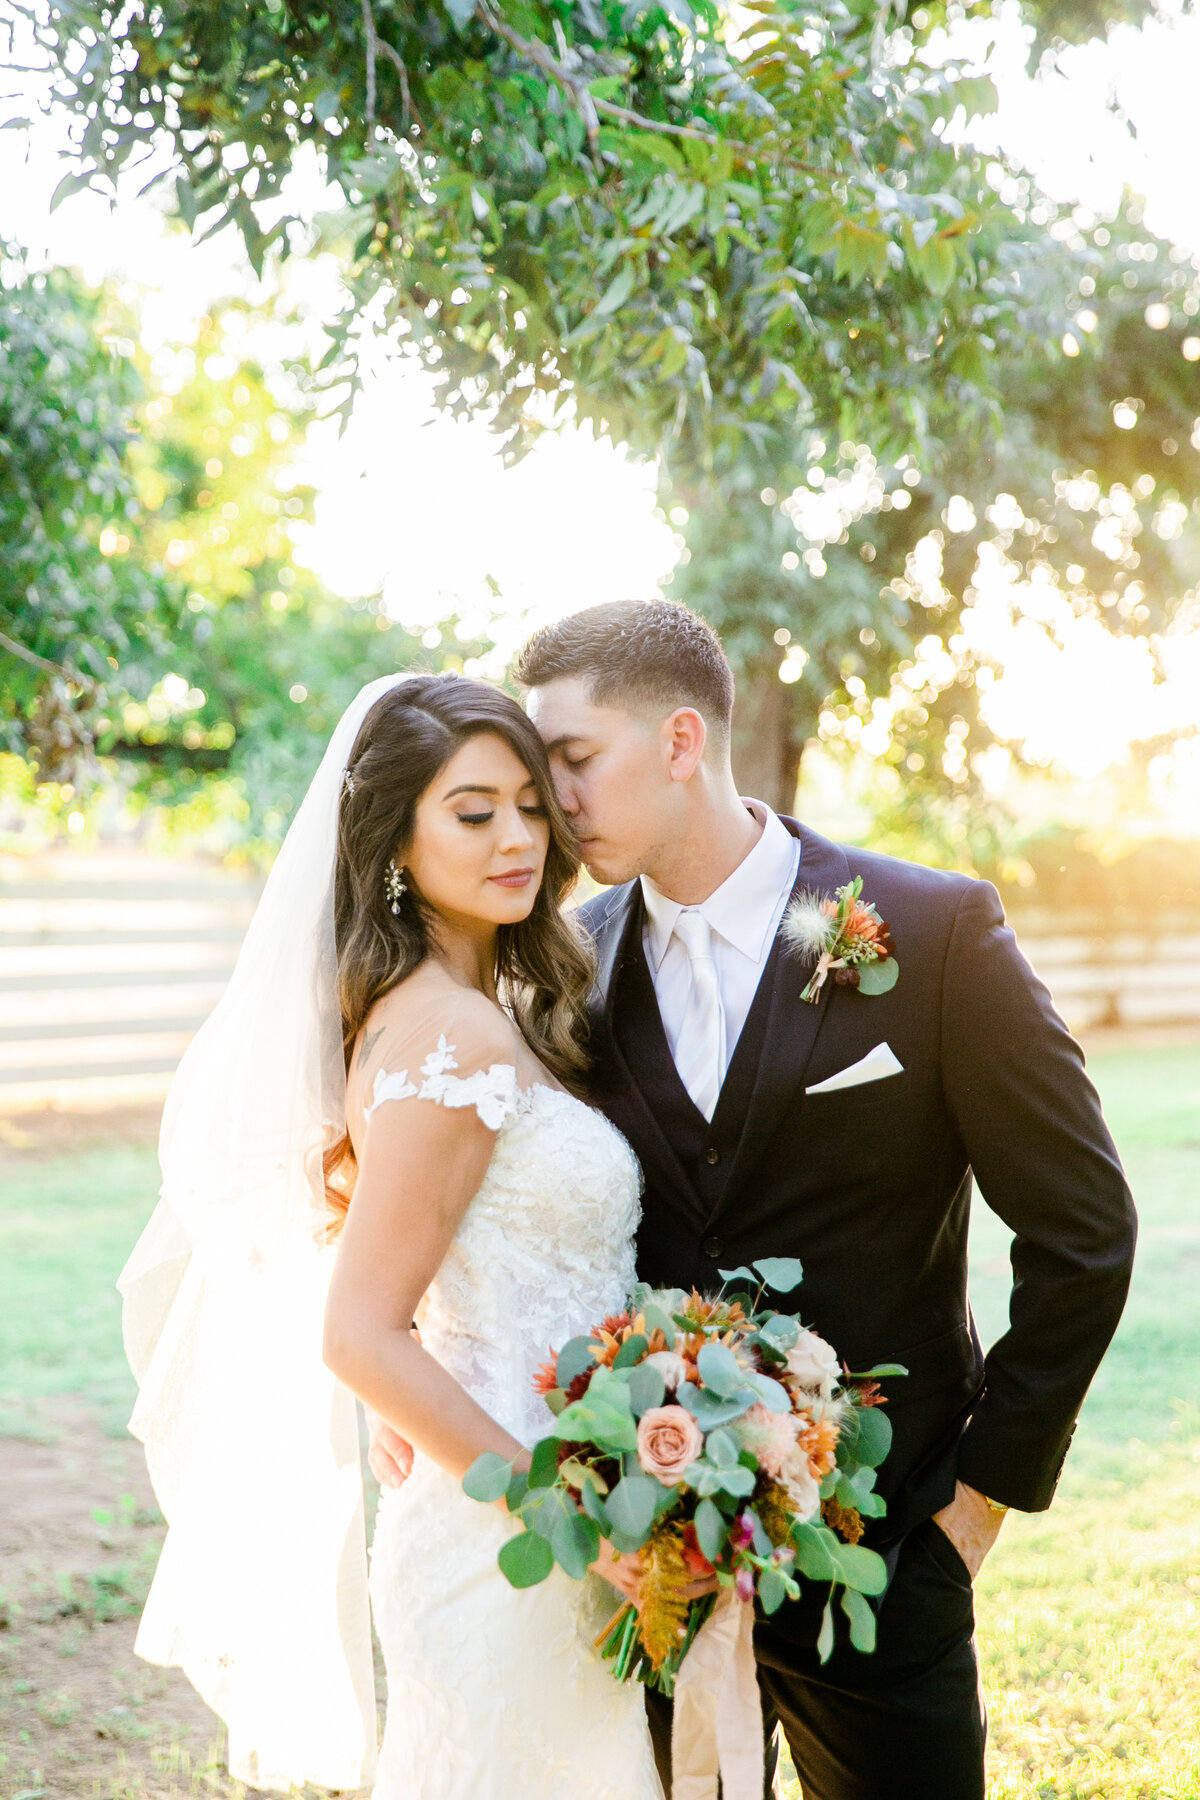 Karlie Colleen Photography - Phoenix Arizona - Farm At South Mountain Venue - Vanessa & Robert-558